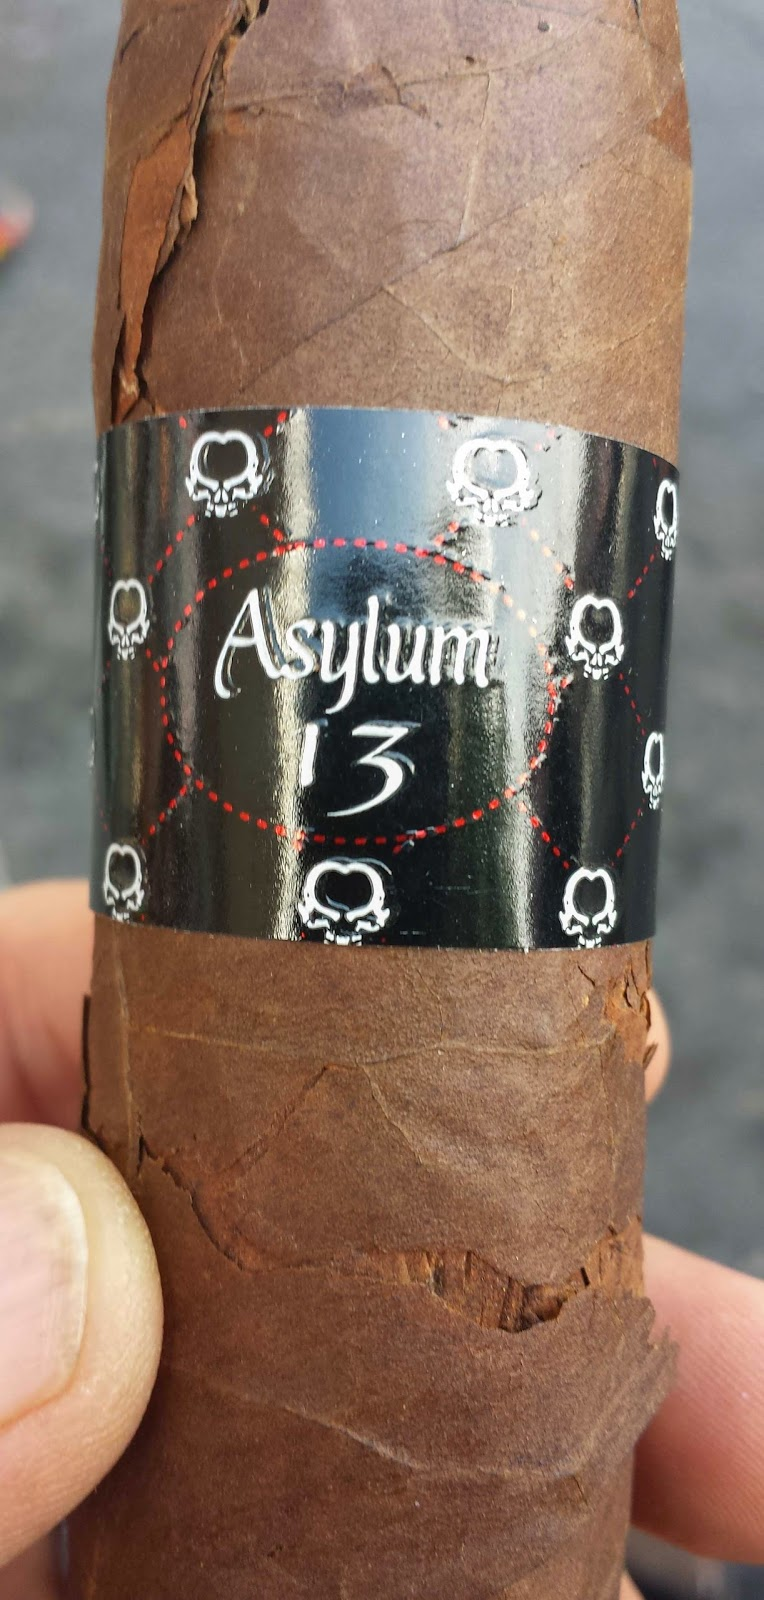 Asylum 13 Eighty Giant 6 x 80